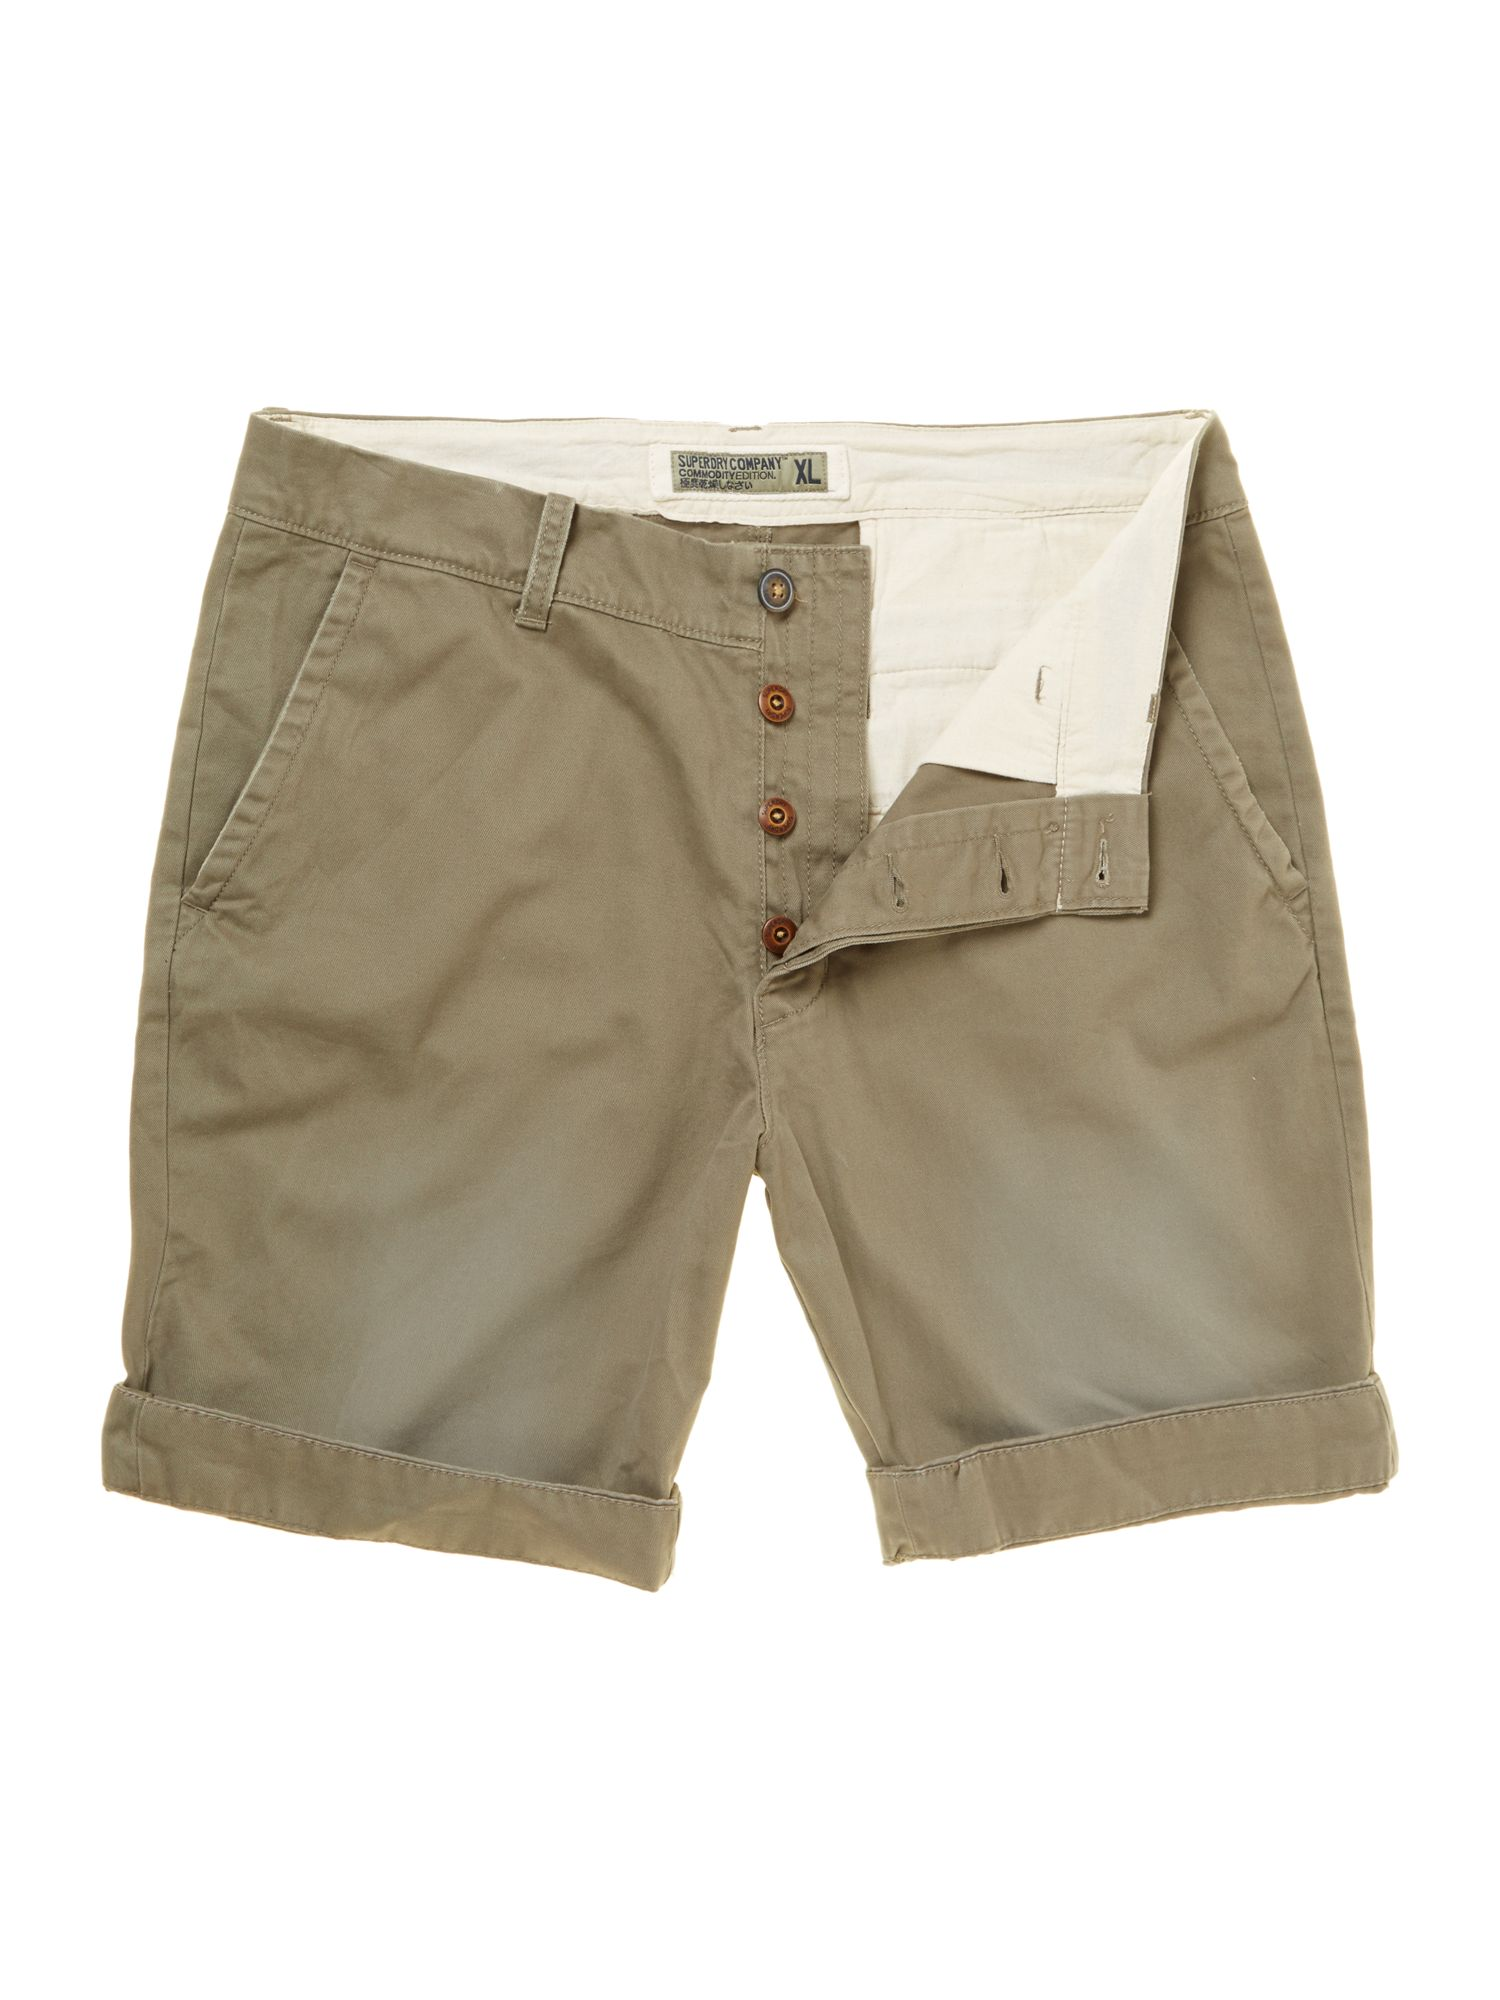 Commodity chino short